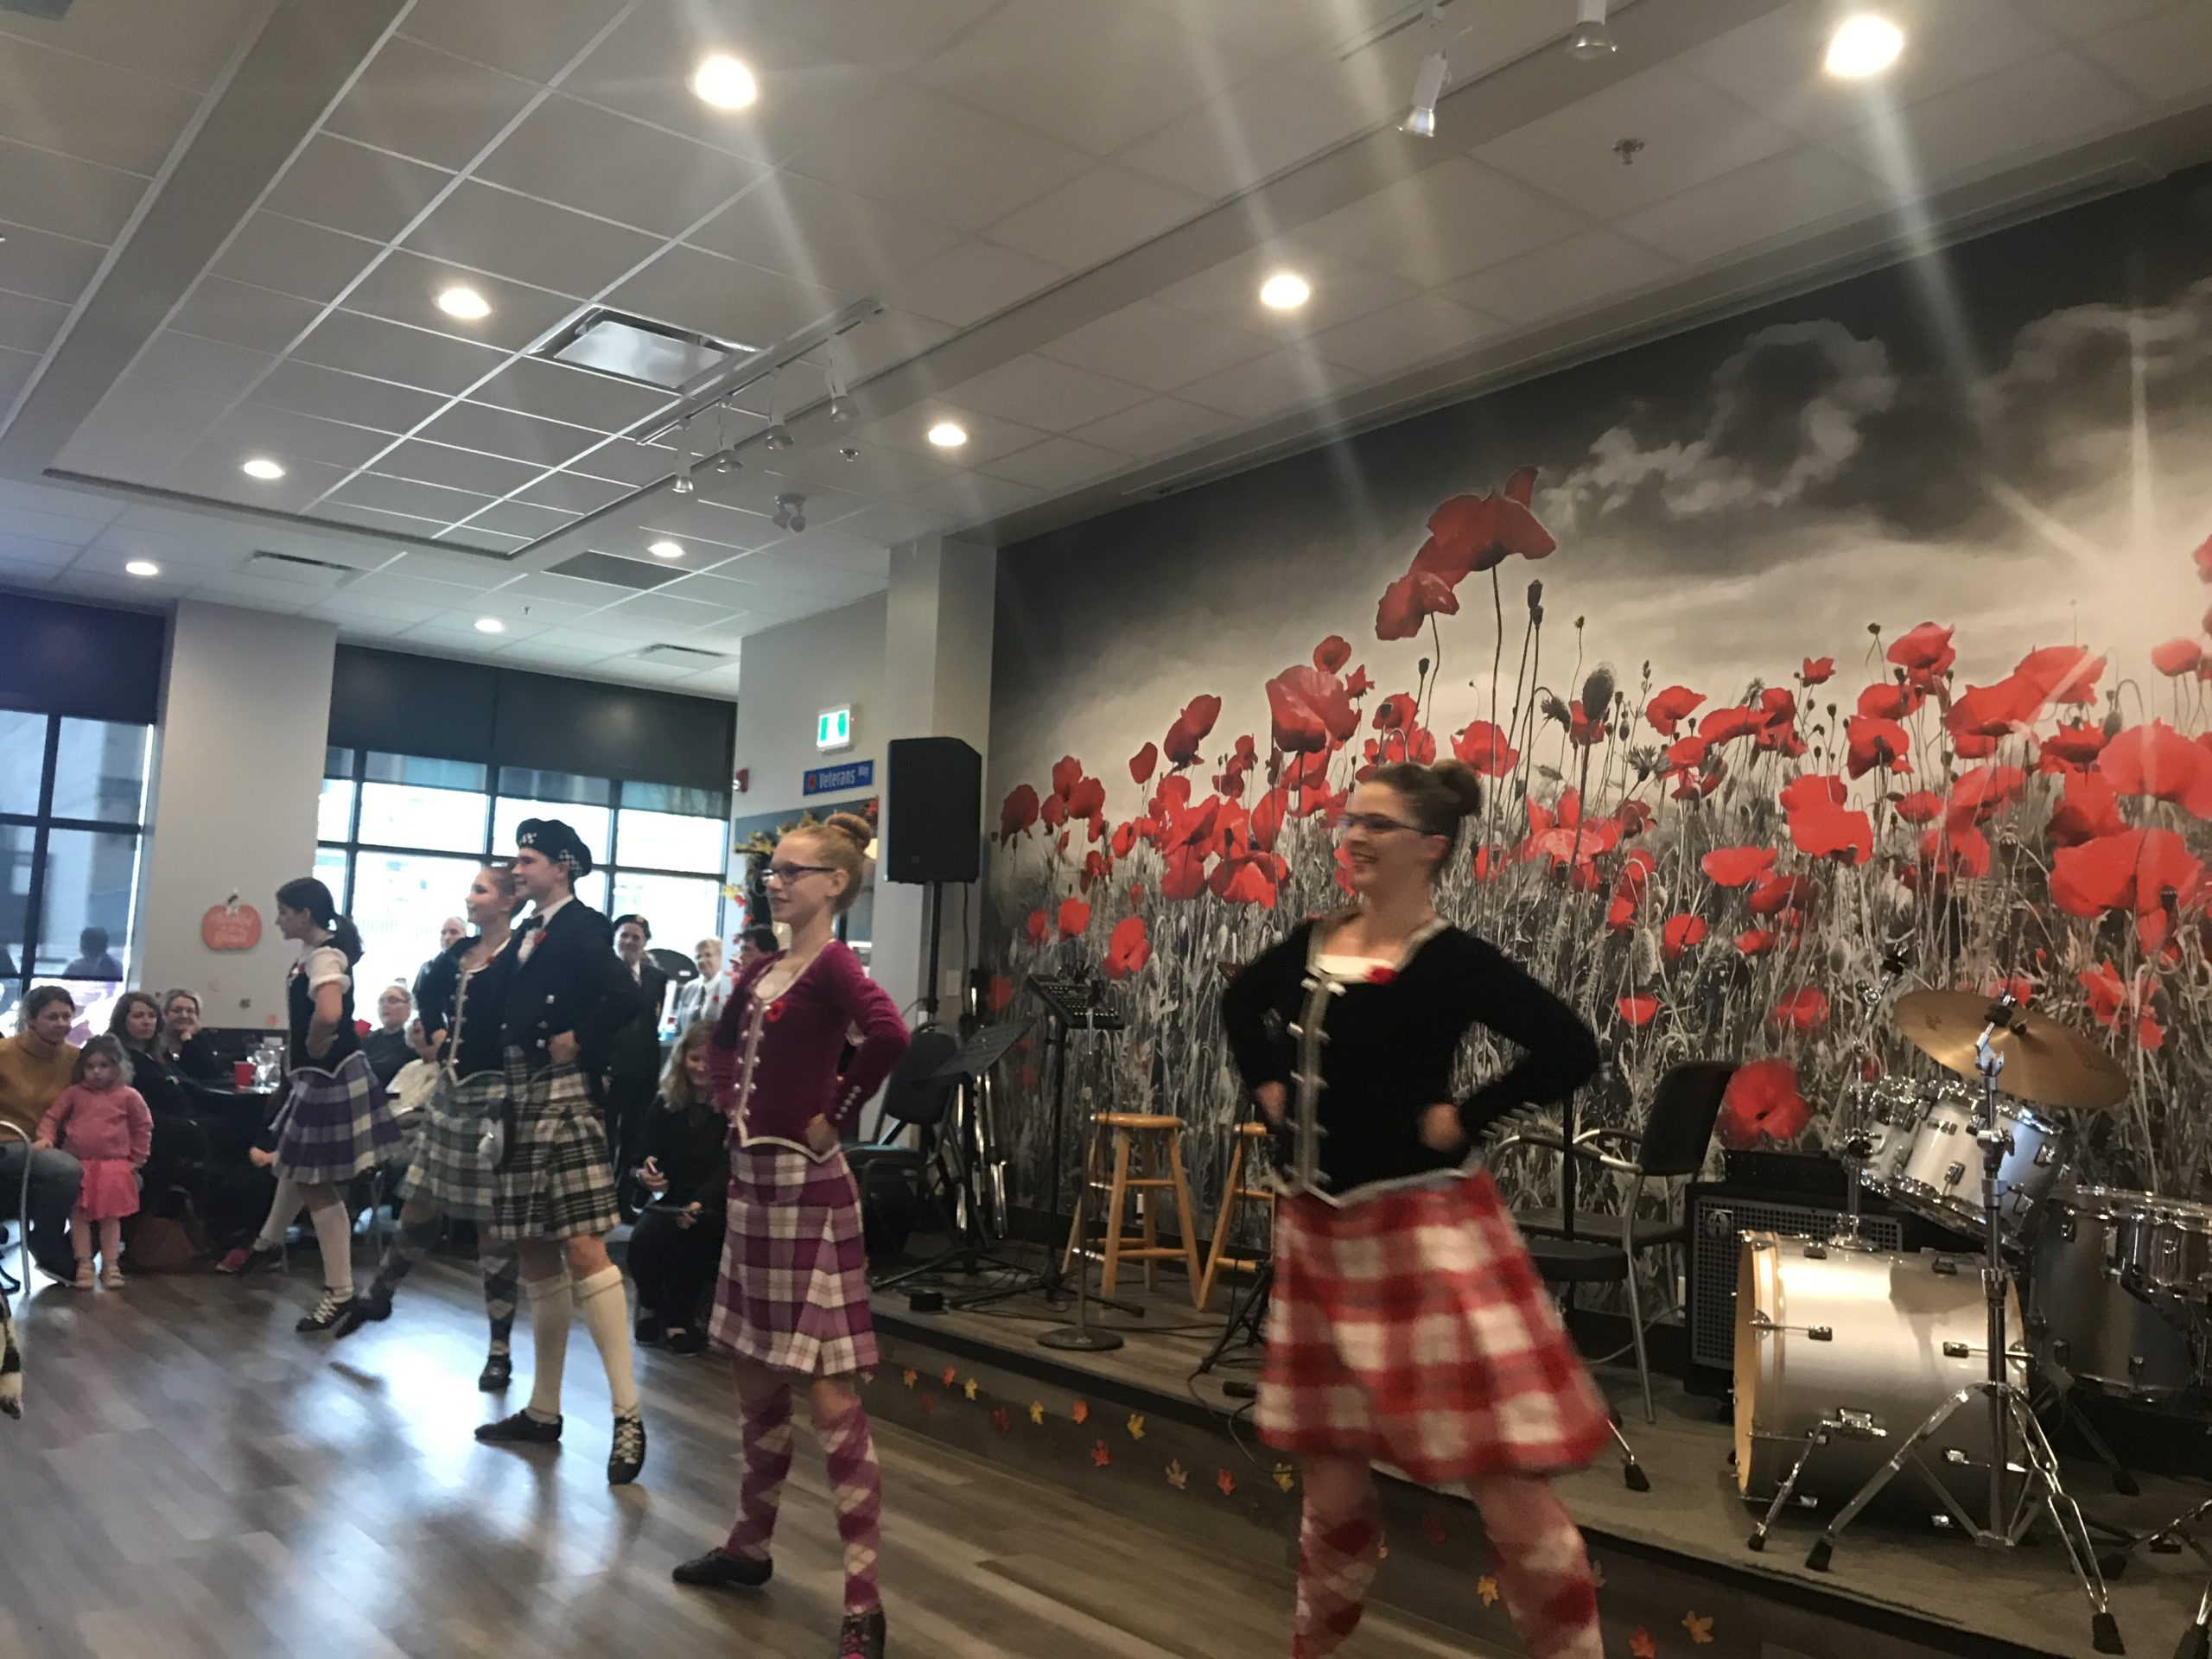 Dancers in Legion 119 on Remembrance Day 2019